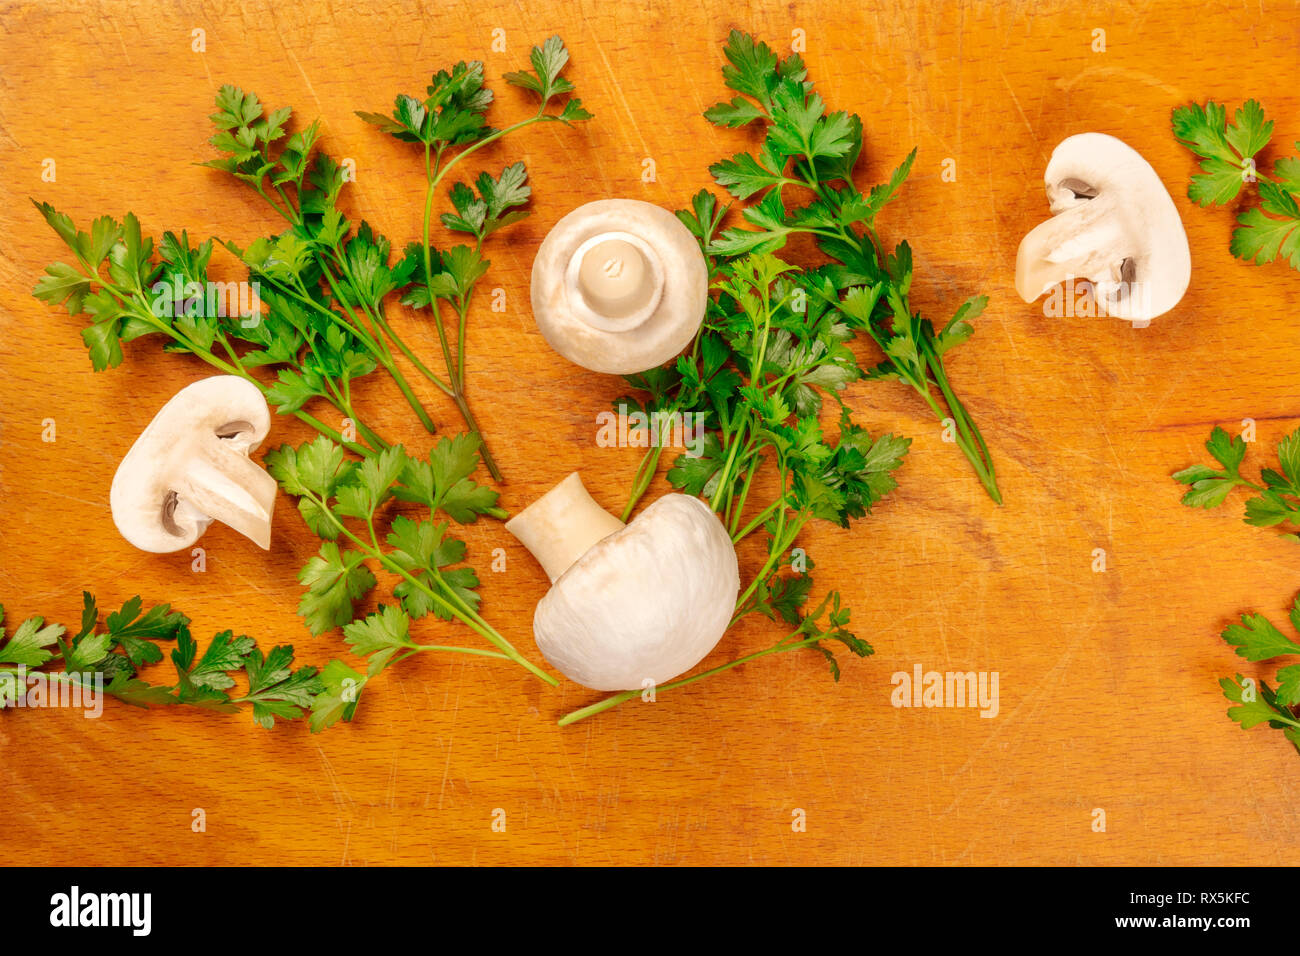 Champignons, whole and sliced, shot from the top on a rustic cutting board with fresh parsley leaves and a place for text - Stock Image